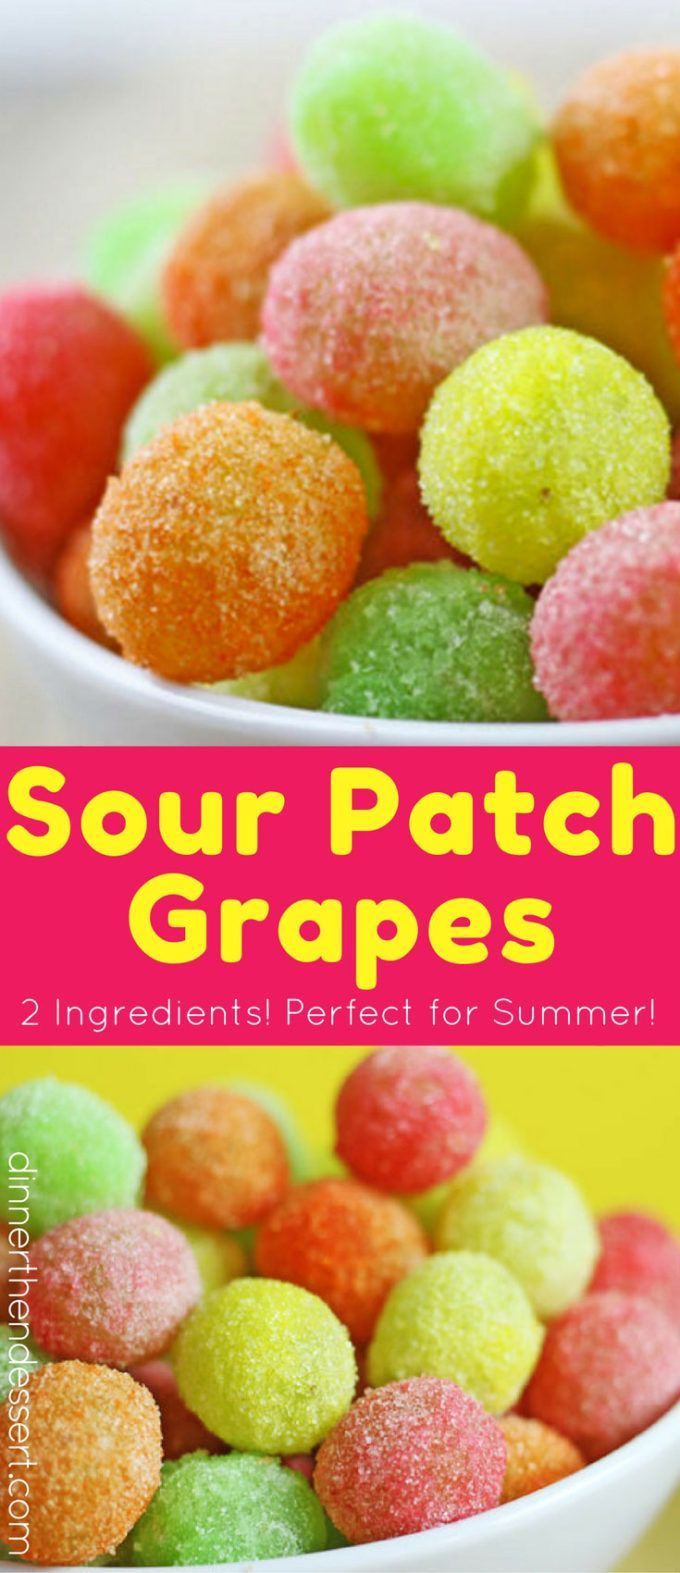 Sour Patch Grapes are a great sour candy fix! With only two ingredients!